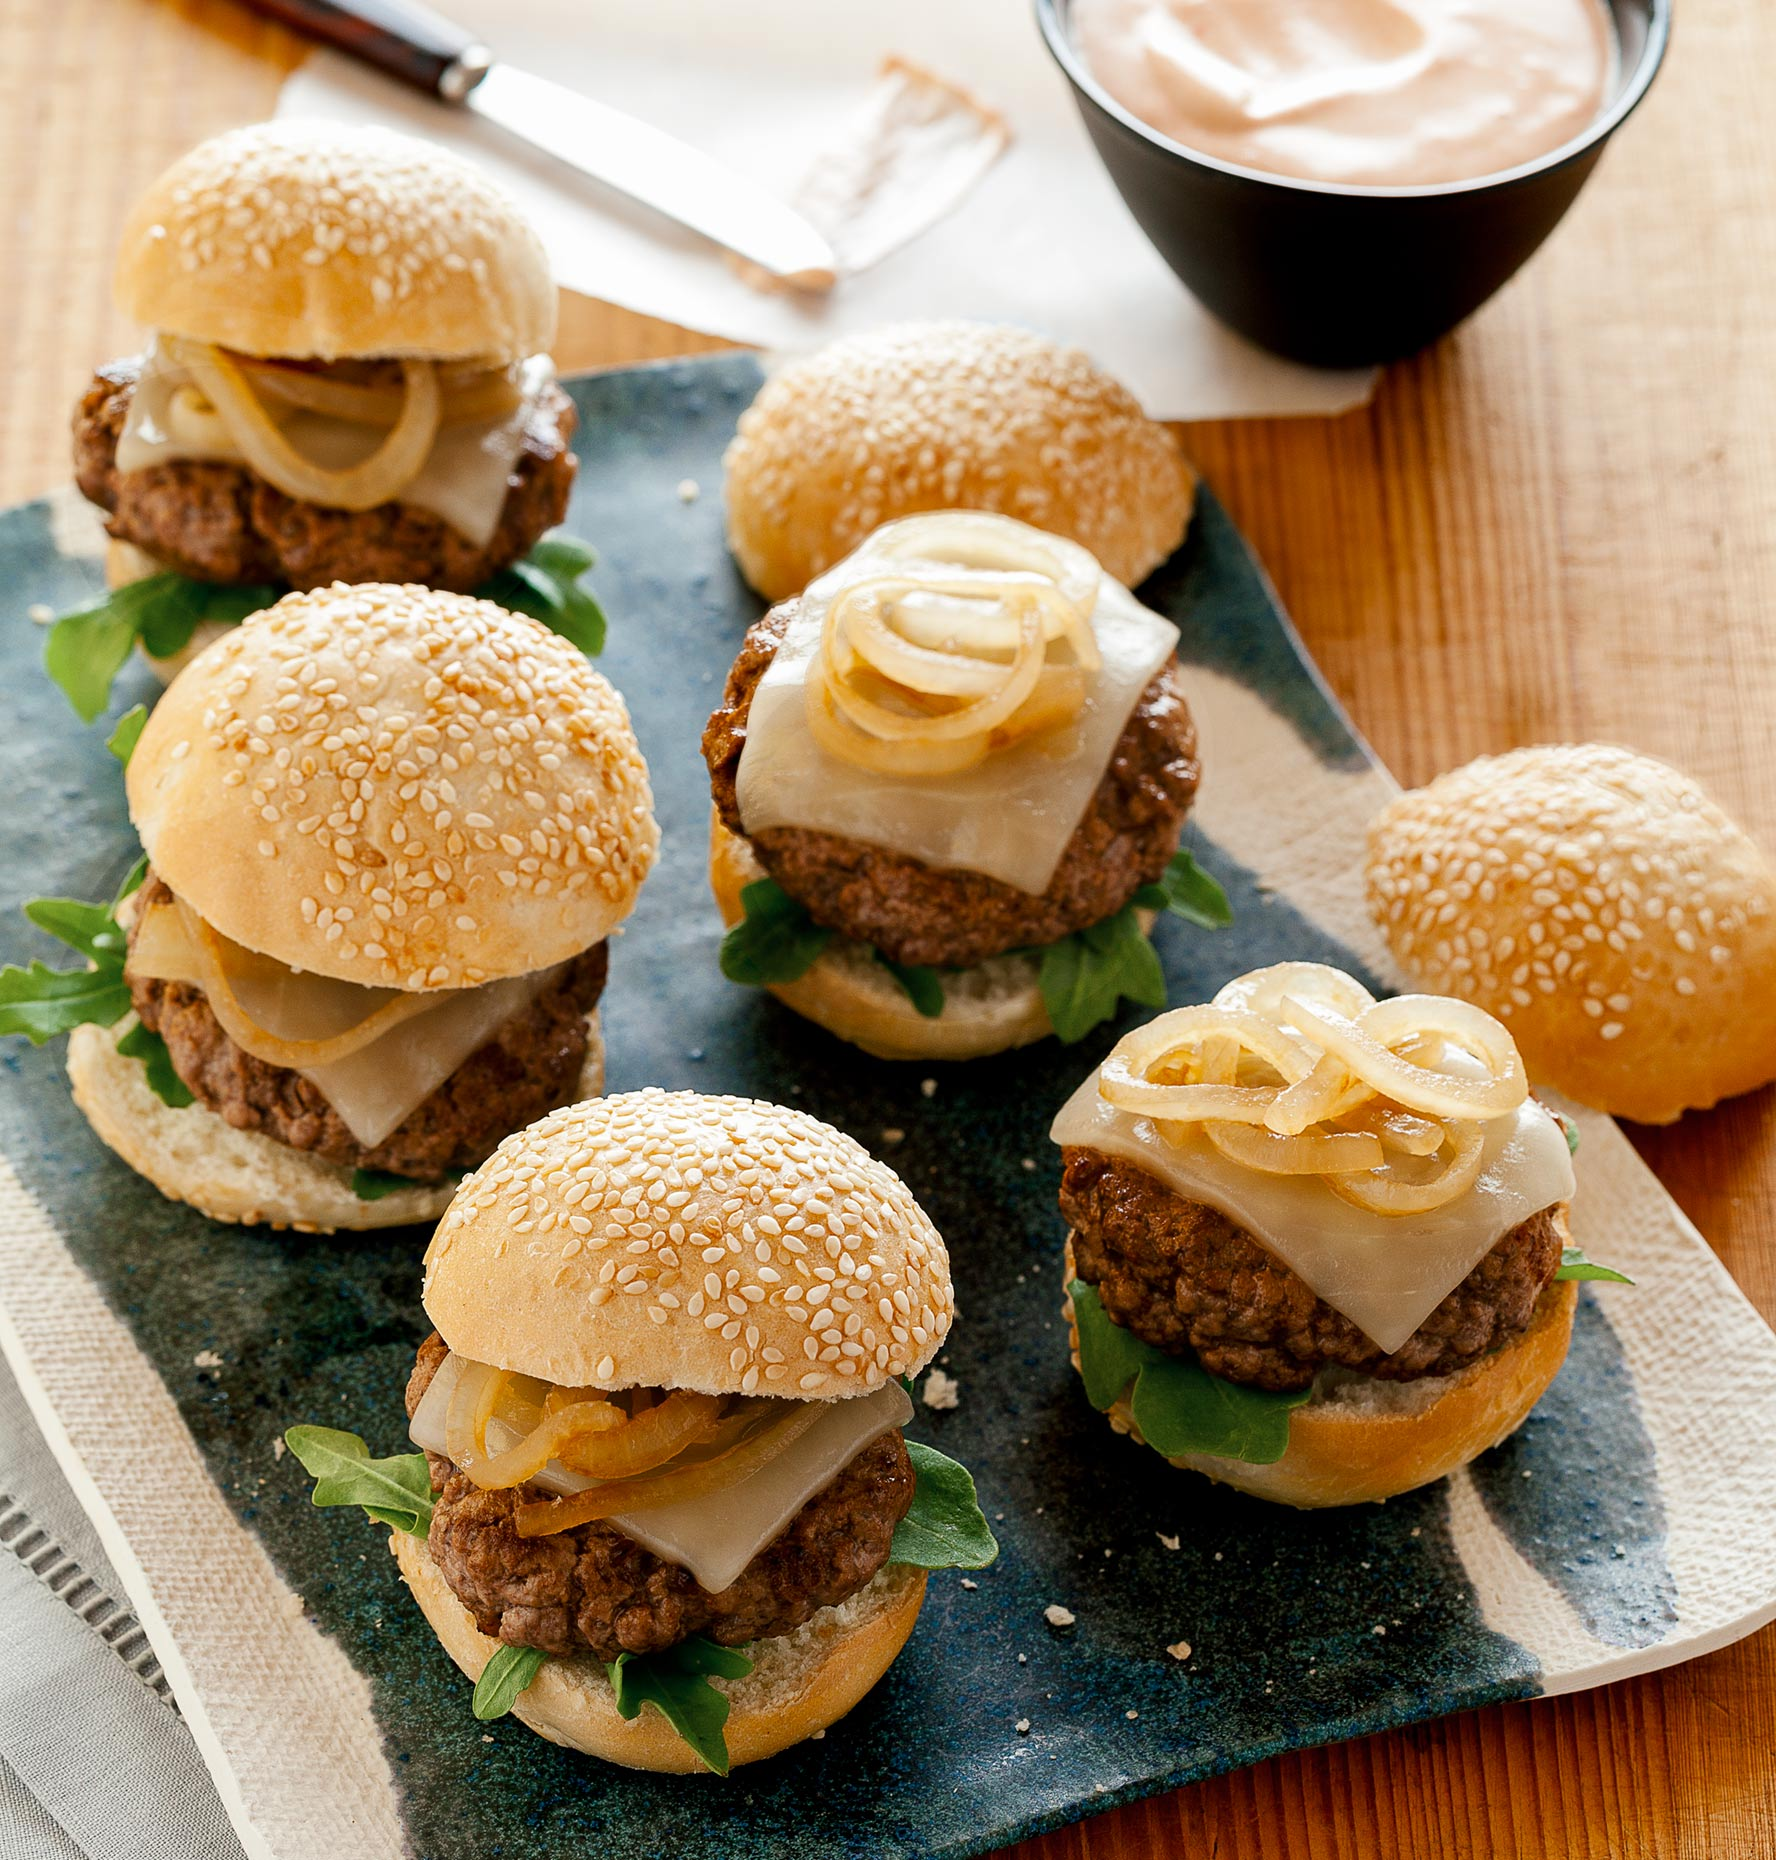 Sliders and burger photography by LA Food Photographer Teri Lyn Fisher